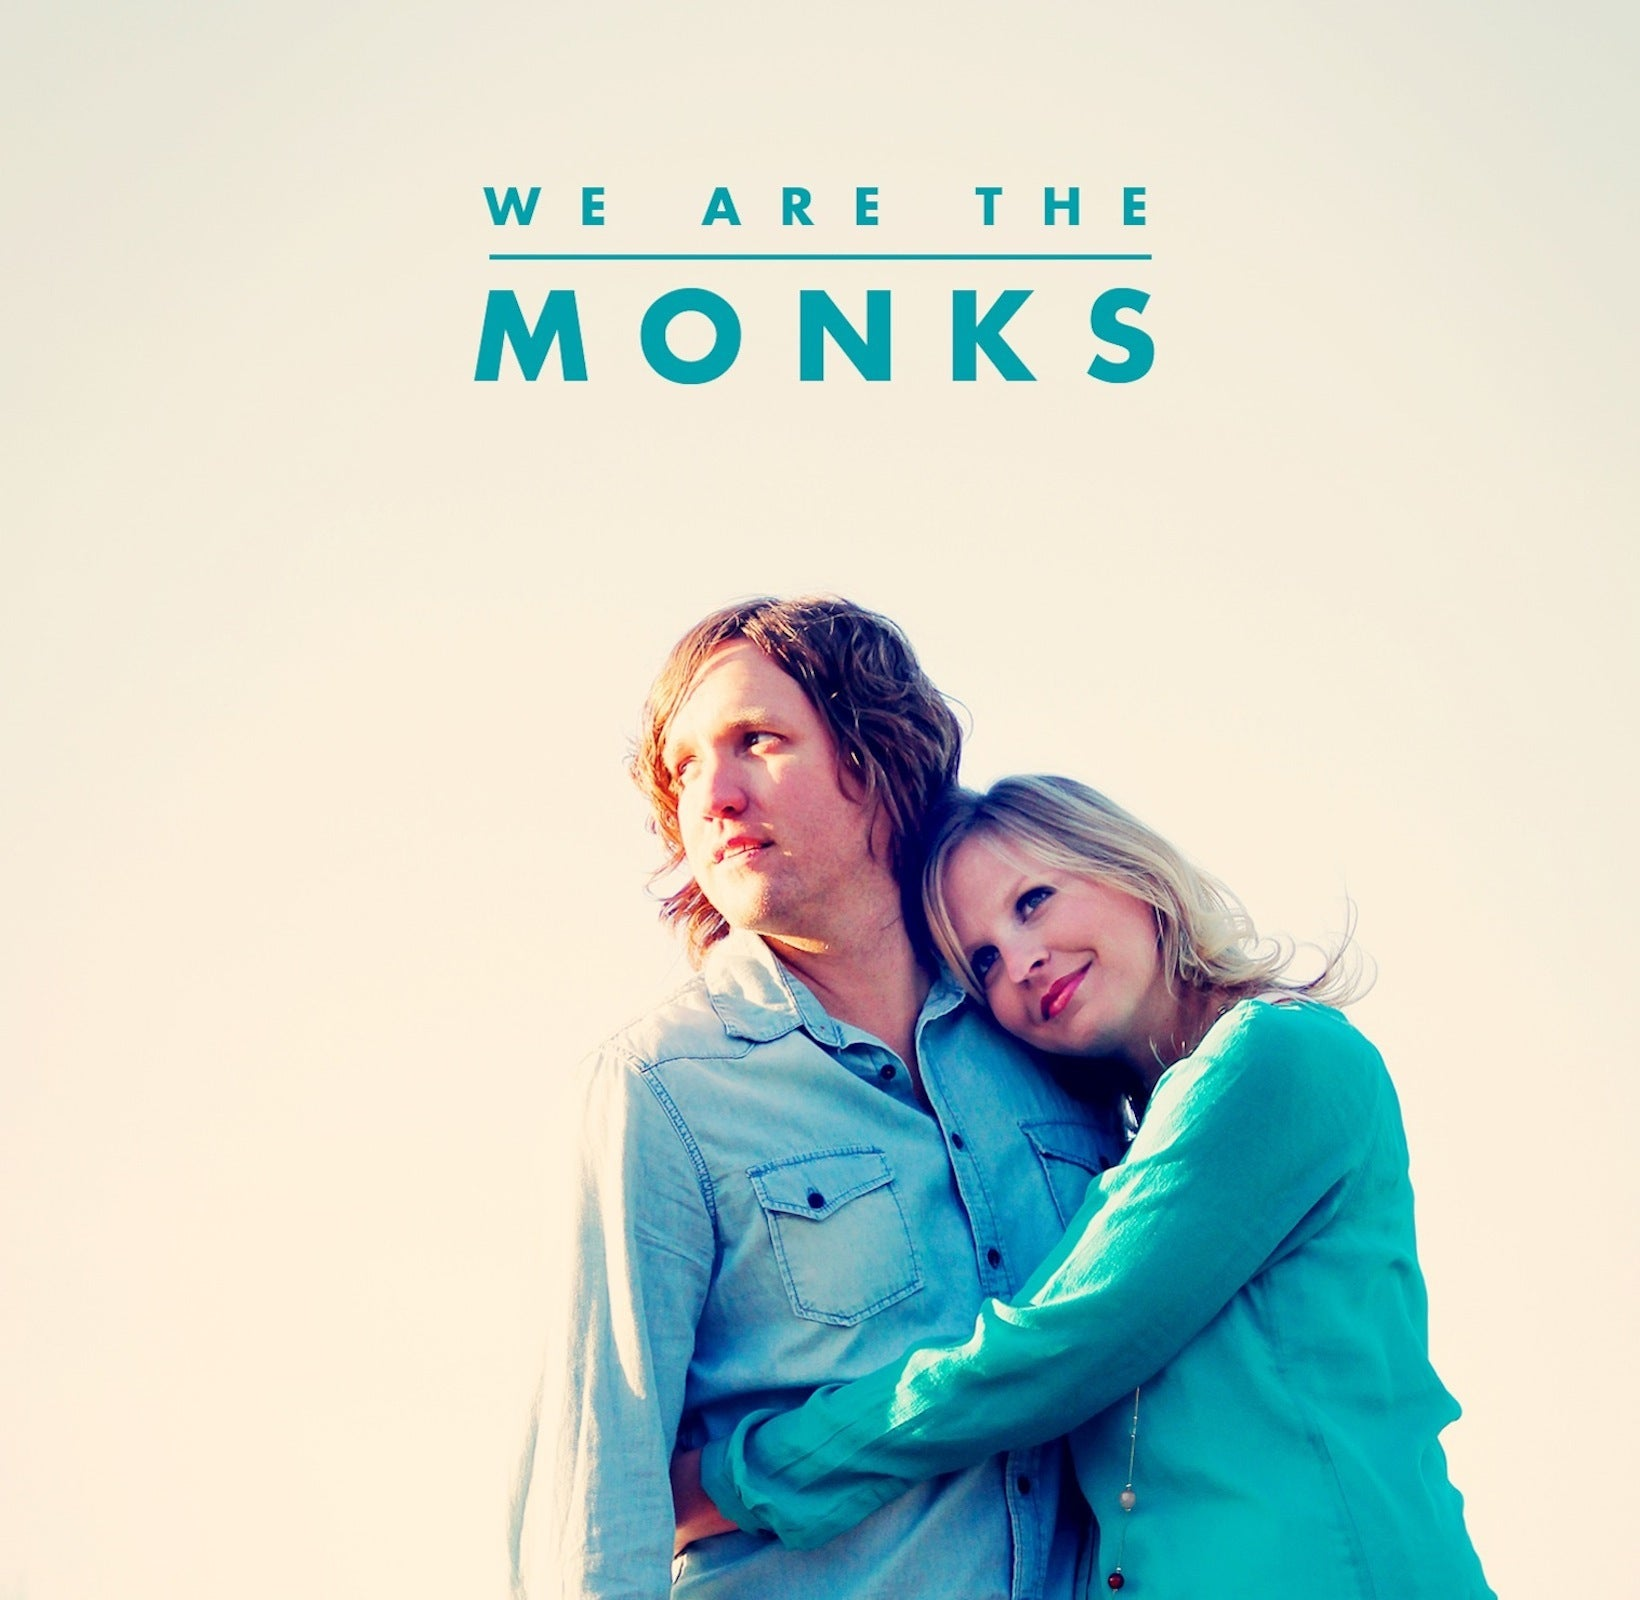 We Are The Monks